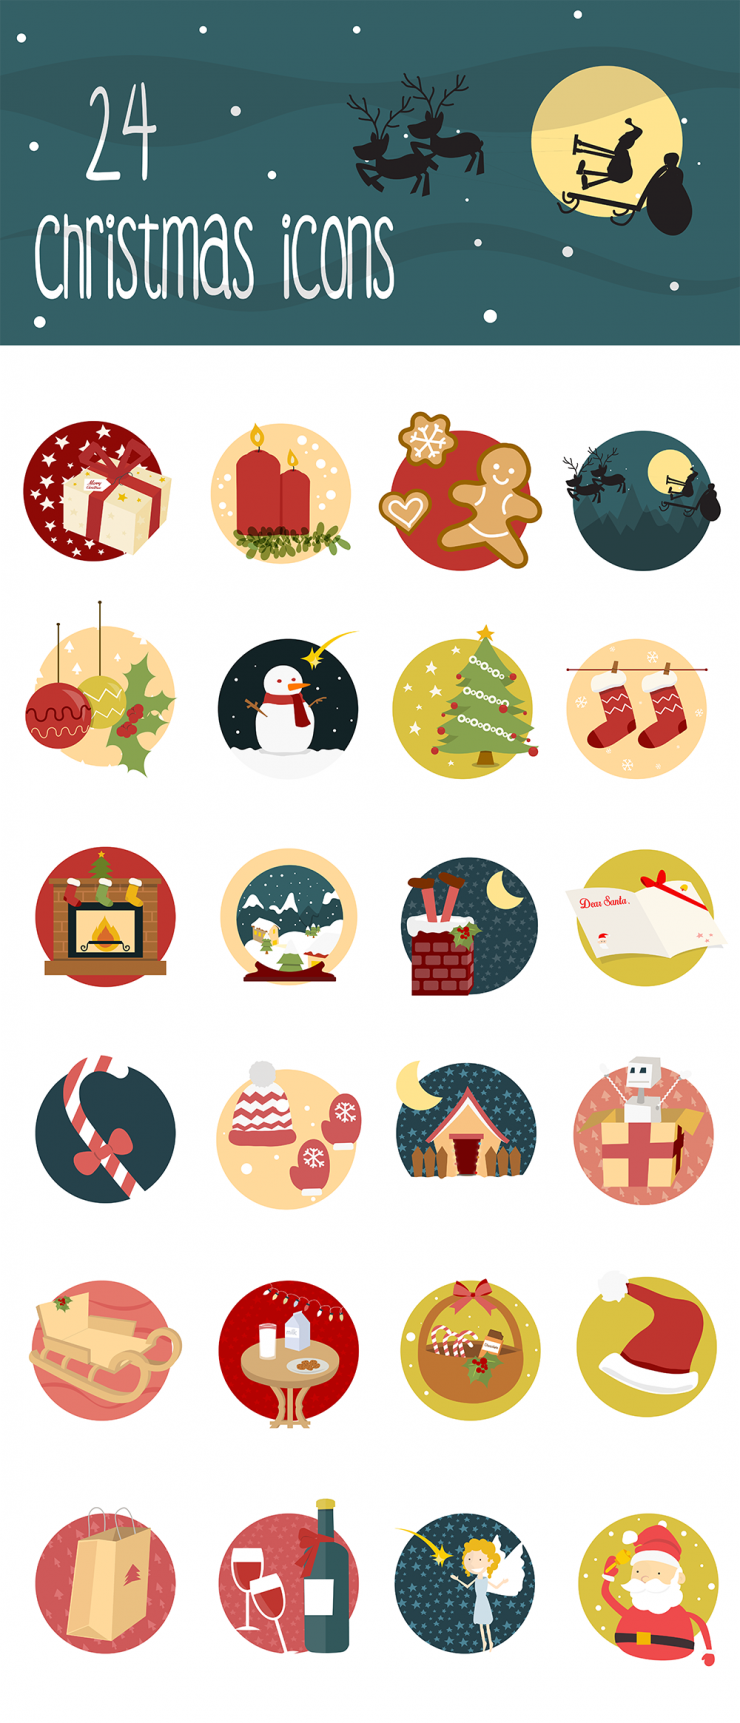 Creative Christmas Icons Set Freebie PSD Web Resources, Web Icons, Web Elements, Vector, Simple, set, Santa, Sale, Resources, Quality, PSD Sources, psd kit, PSD Icons, psd free, PSD, New Year, Layered PSDs, Icons Set, Icons, Icon PSD, Icon, Holiday, Gift, Freebie, Free PSD, Free Icons, Free Icon, Free, Flat, Fastival, Elements, Creative, Colorful, Clean, Christmas, Candy,